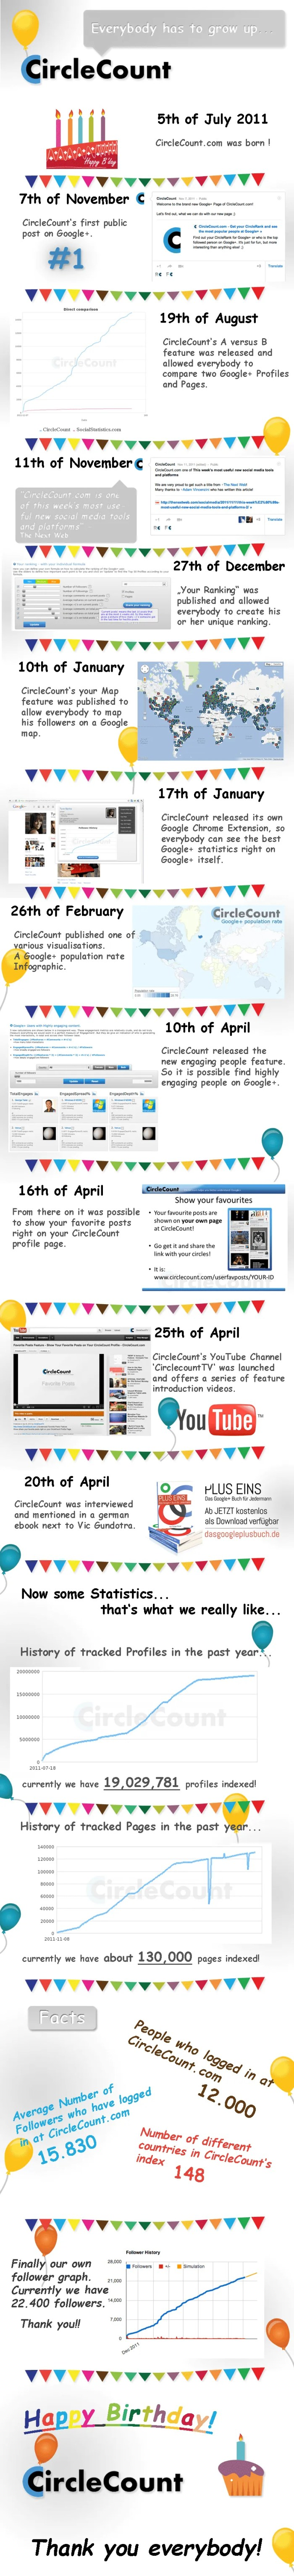 Happy Birthday CircleCount. A brief review of your first year.